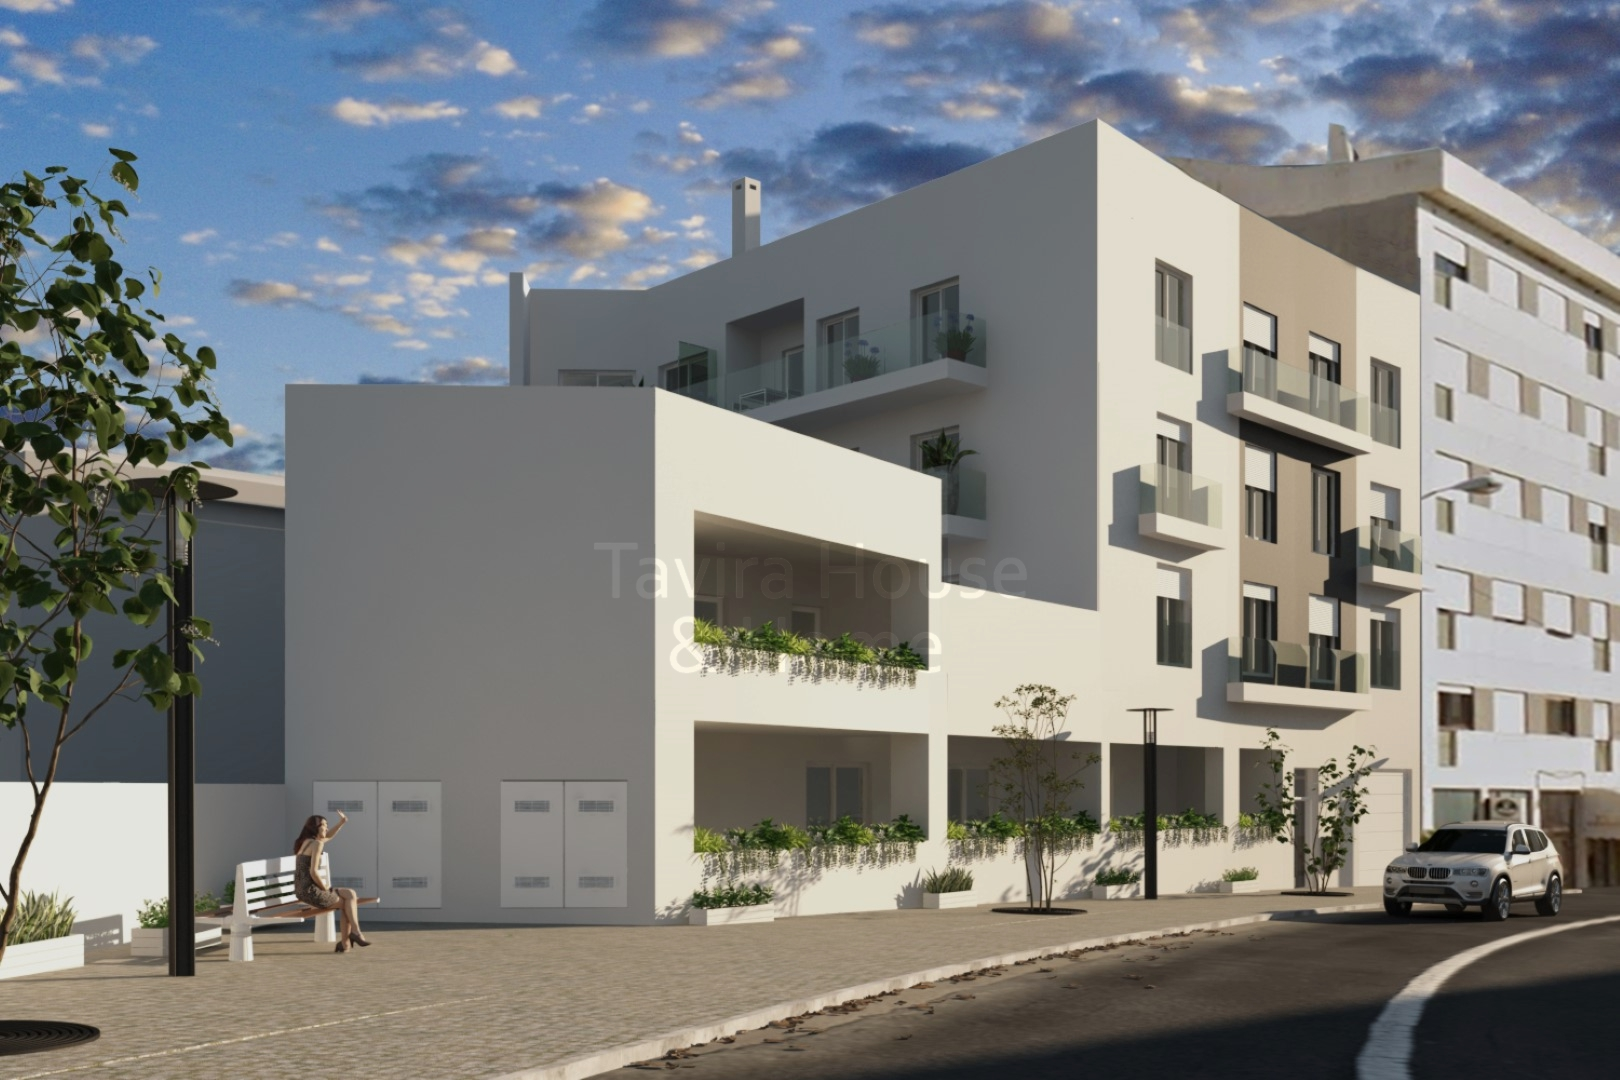 A0624 - New 3 Bedroom Apartments Under Construction  Central Tavira  Portugal